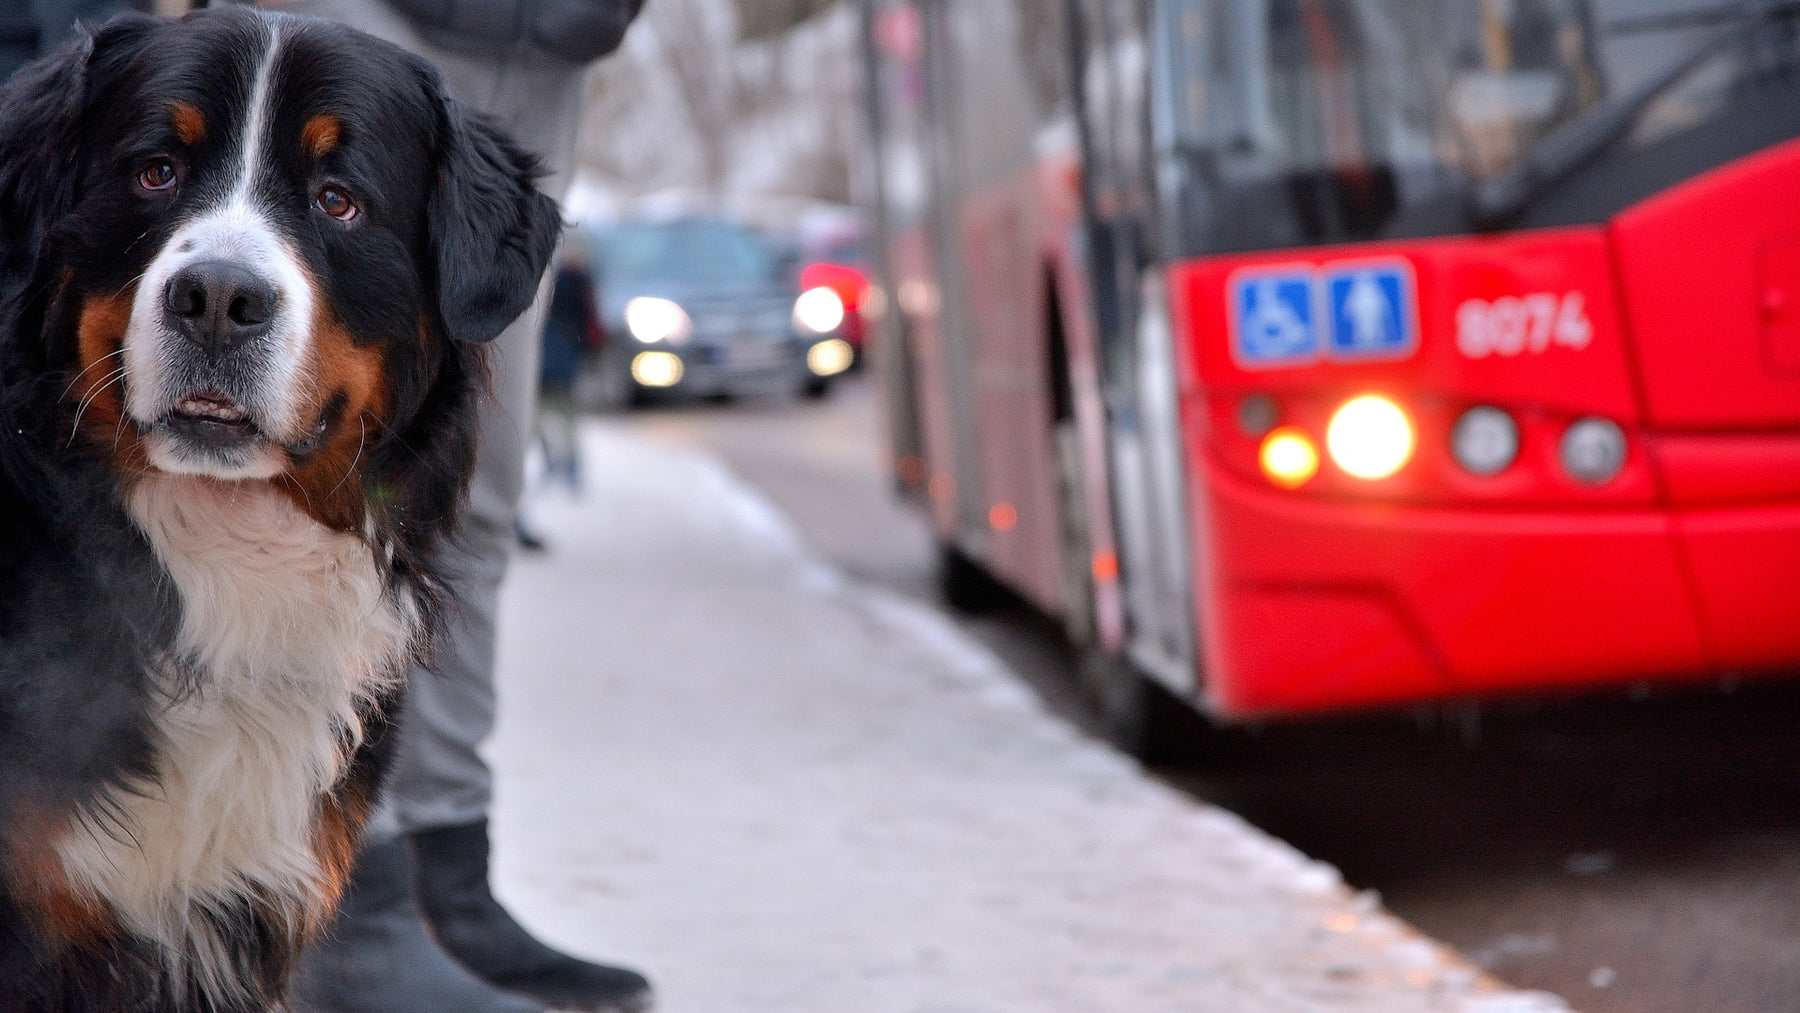 Top Tips for Taking Your Pet on Public Transport